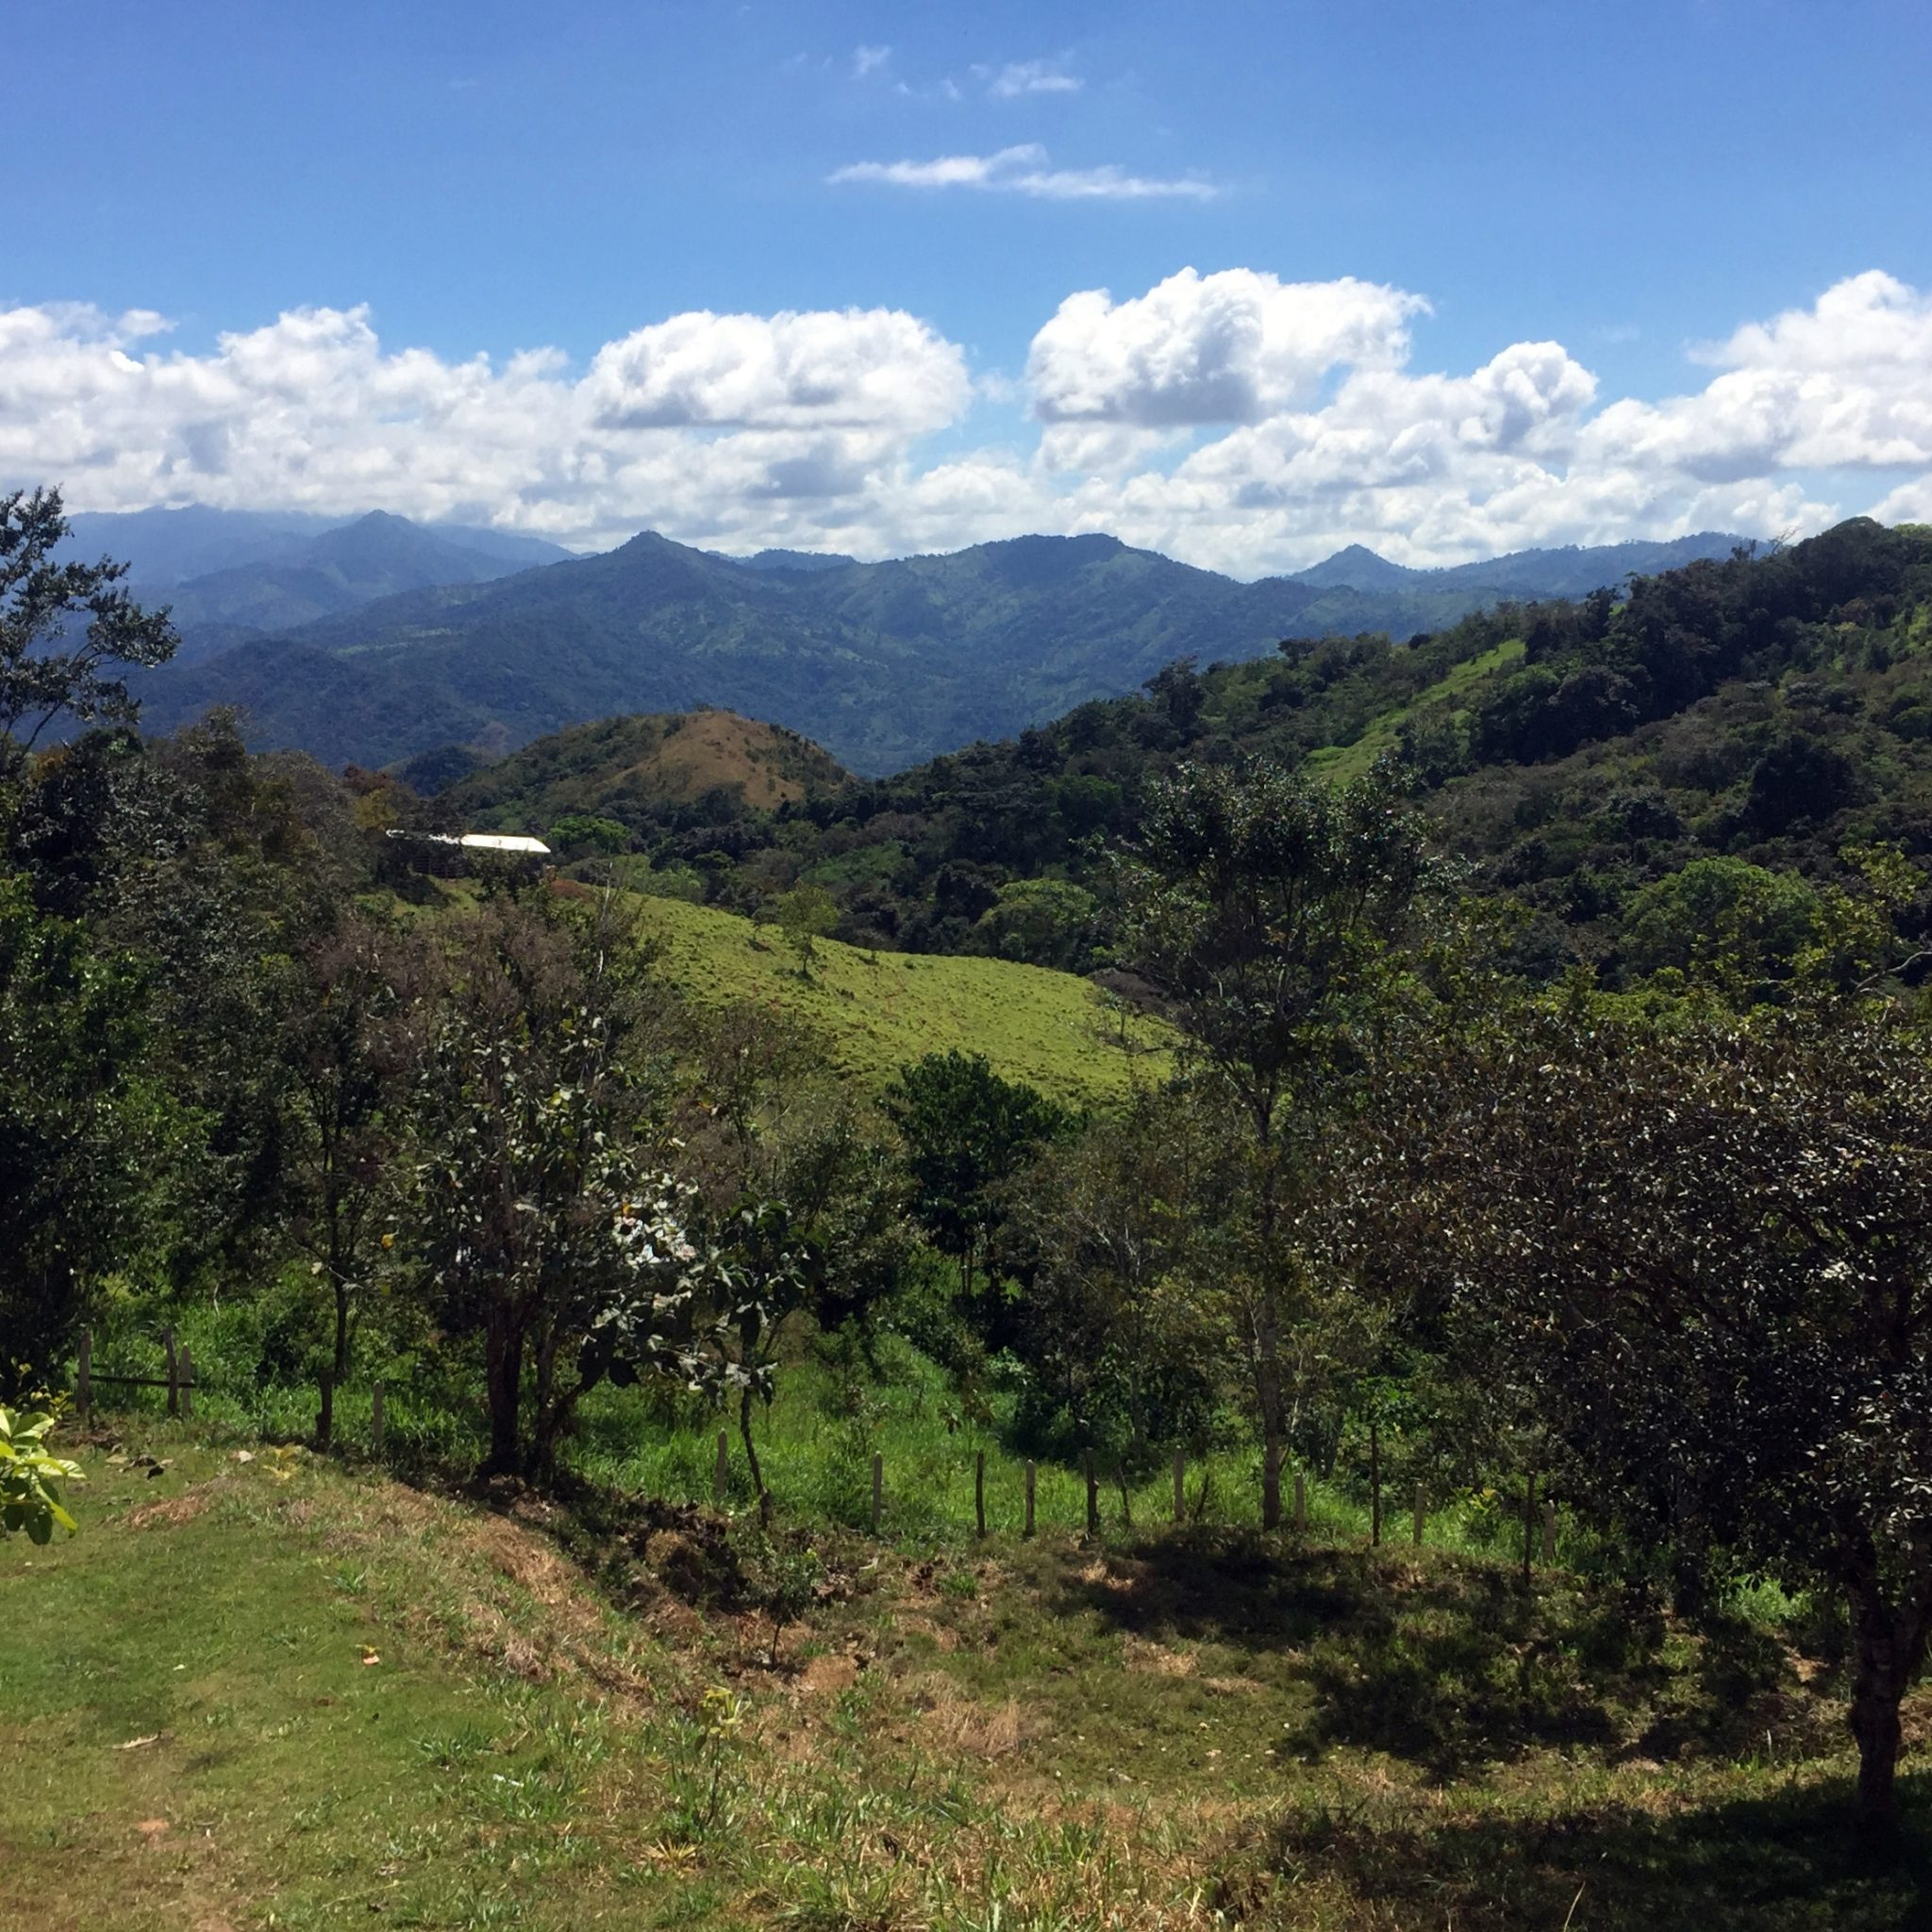 The views of the picturesque valley of river Terraba are absolutely breathtaking.